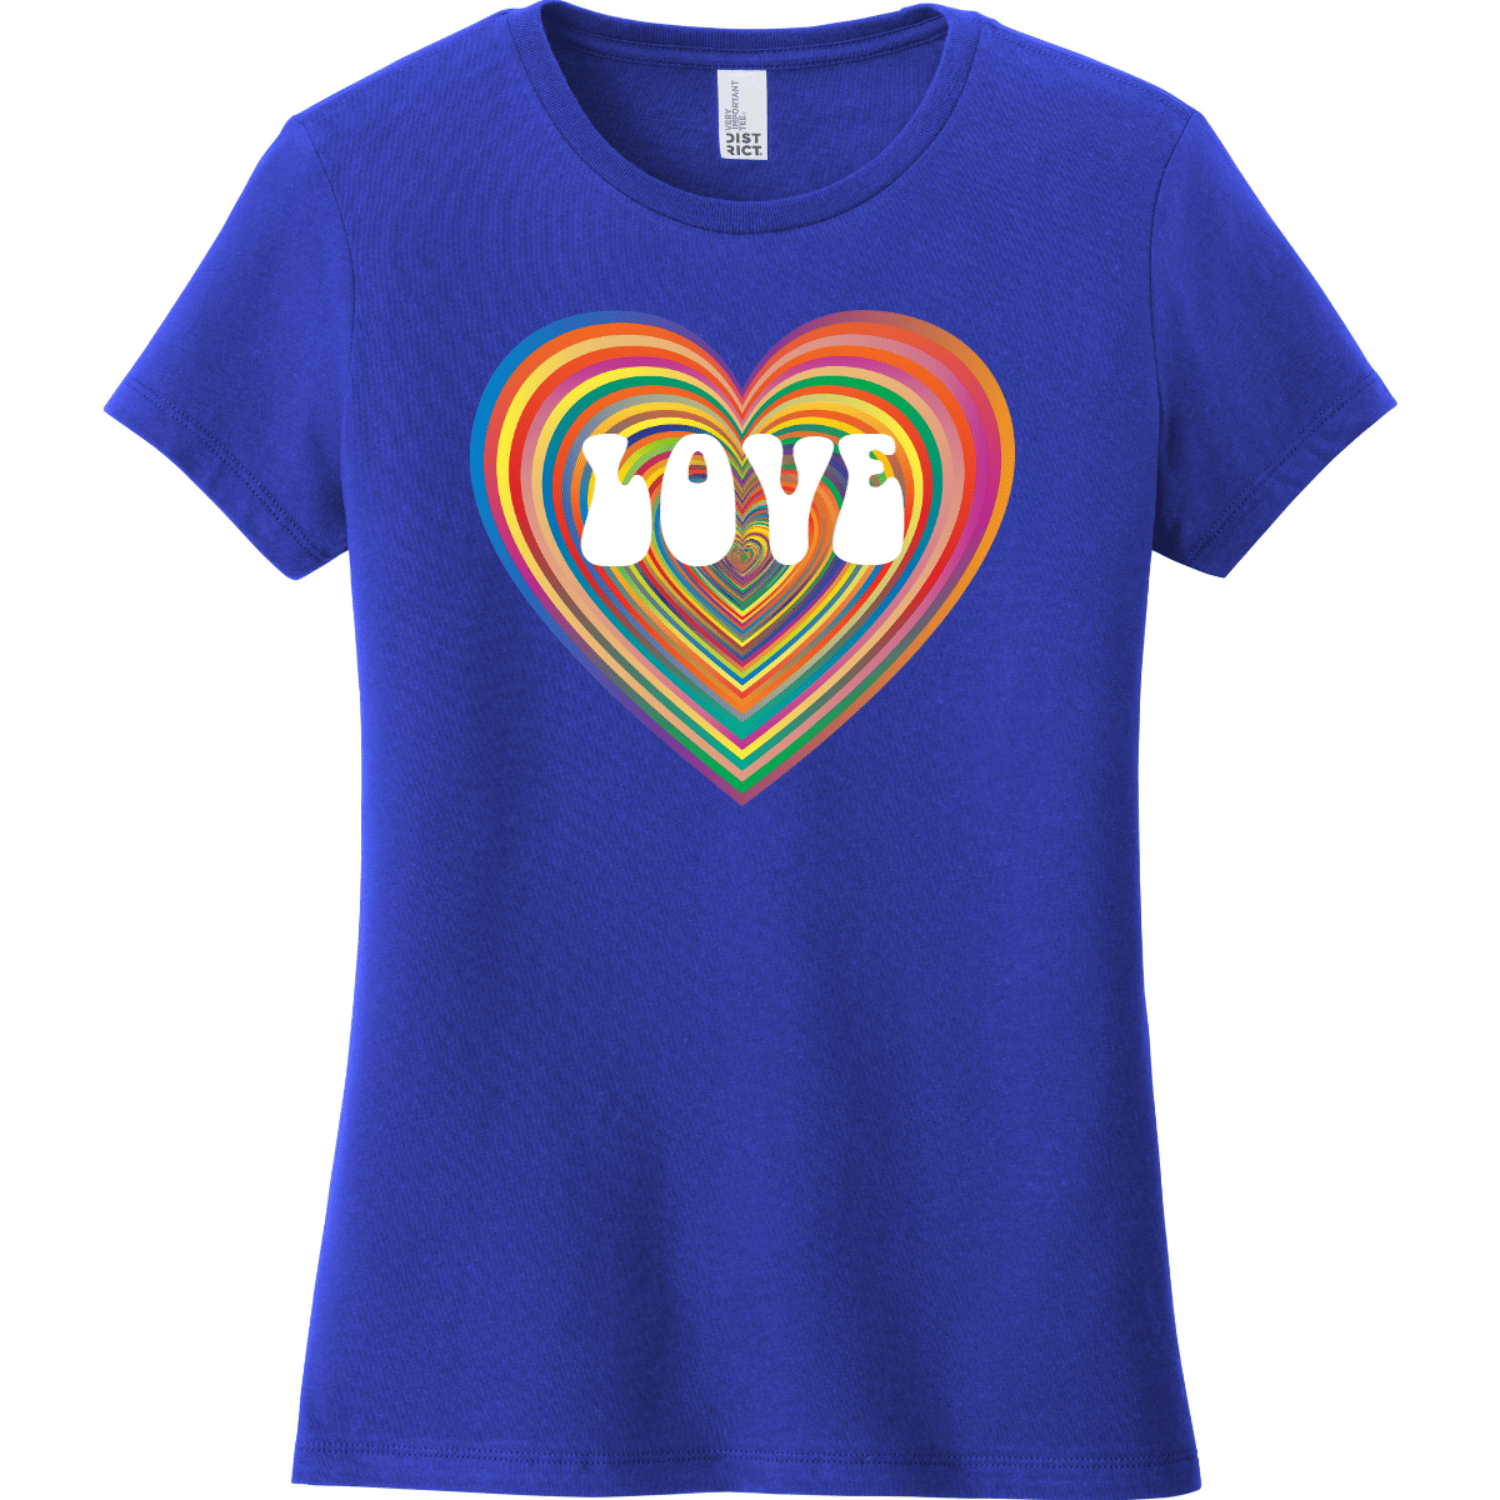 Love Psychedelic Heart T Shirt Deep Royal District Women's Very Important Tee DT6002